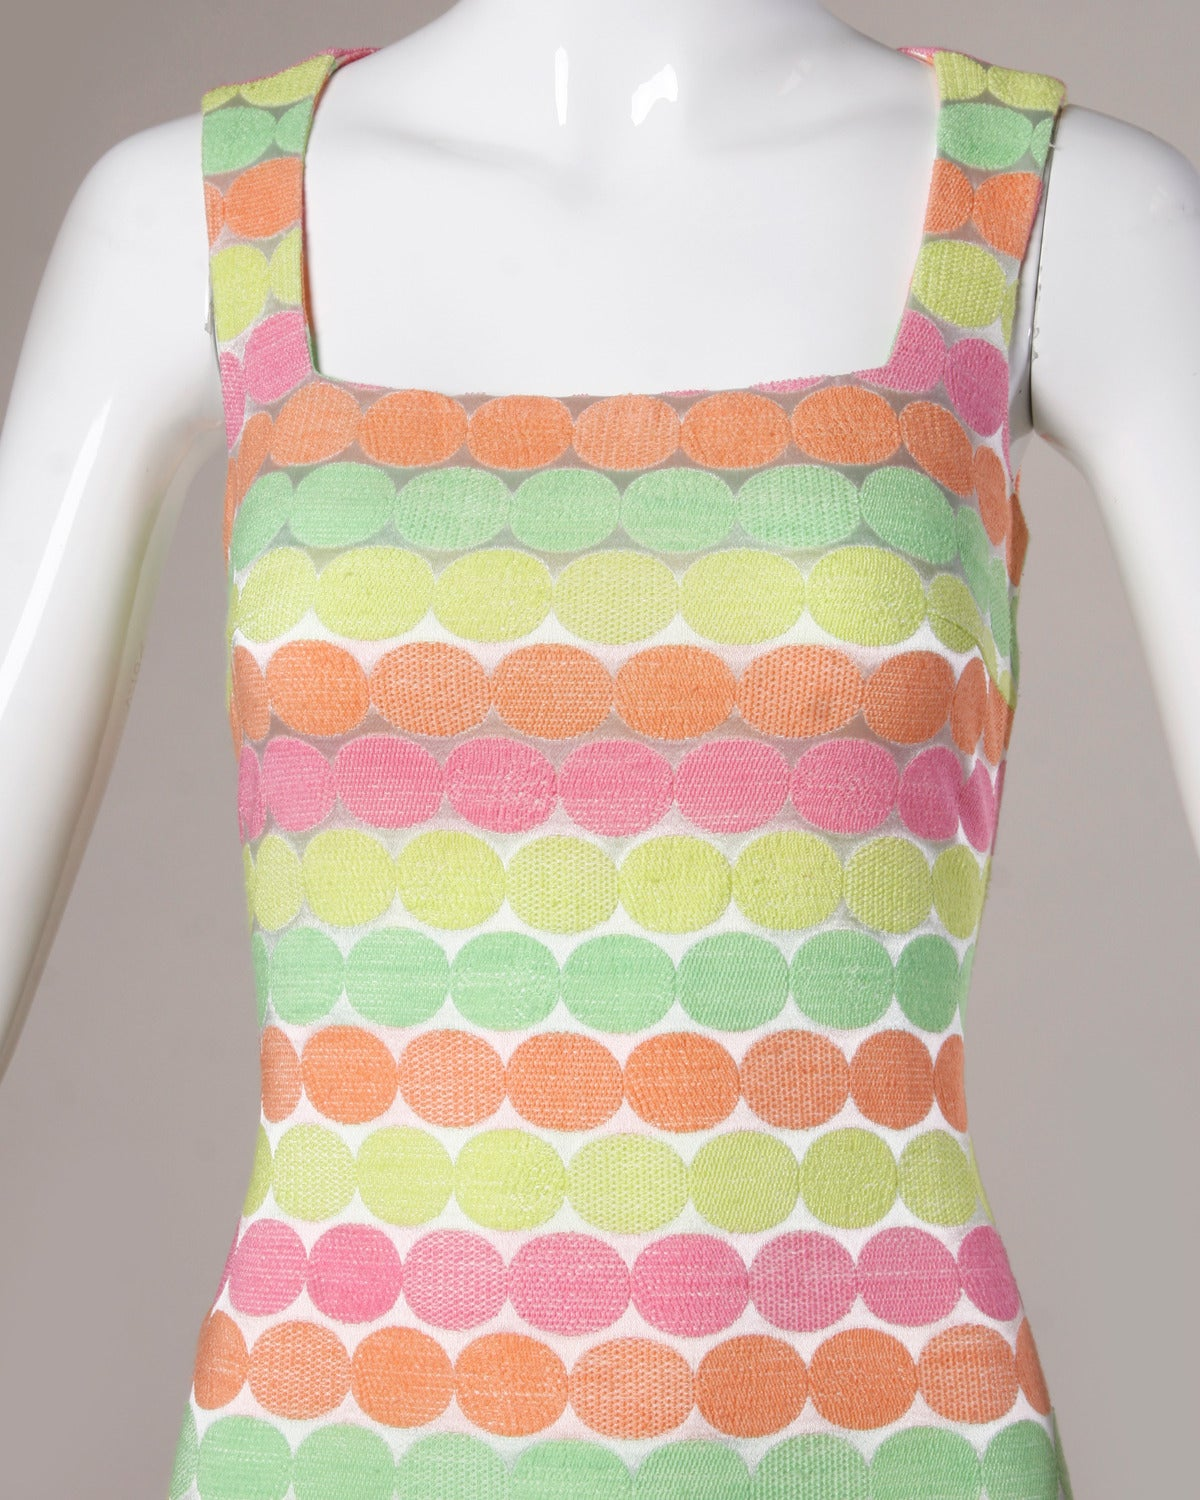 Gianni Versace Vintage 1990s 90s Neon Polka Dots Body Con Dress 2